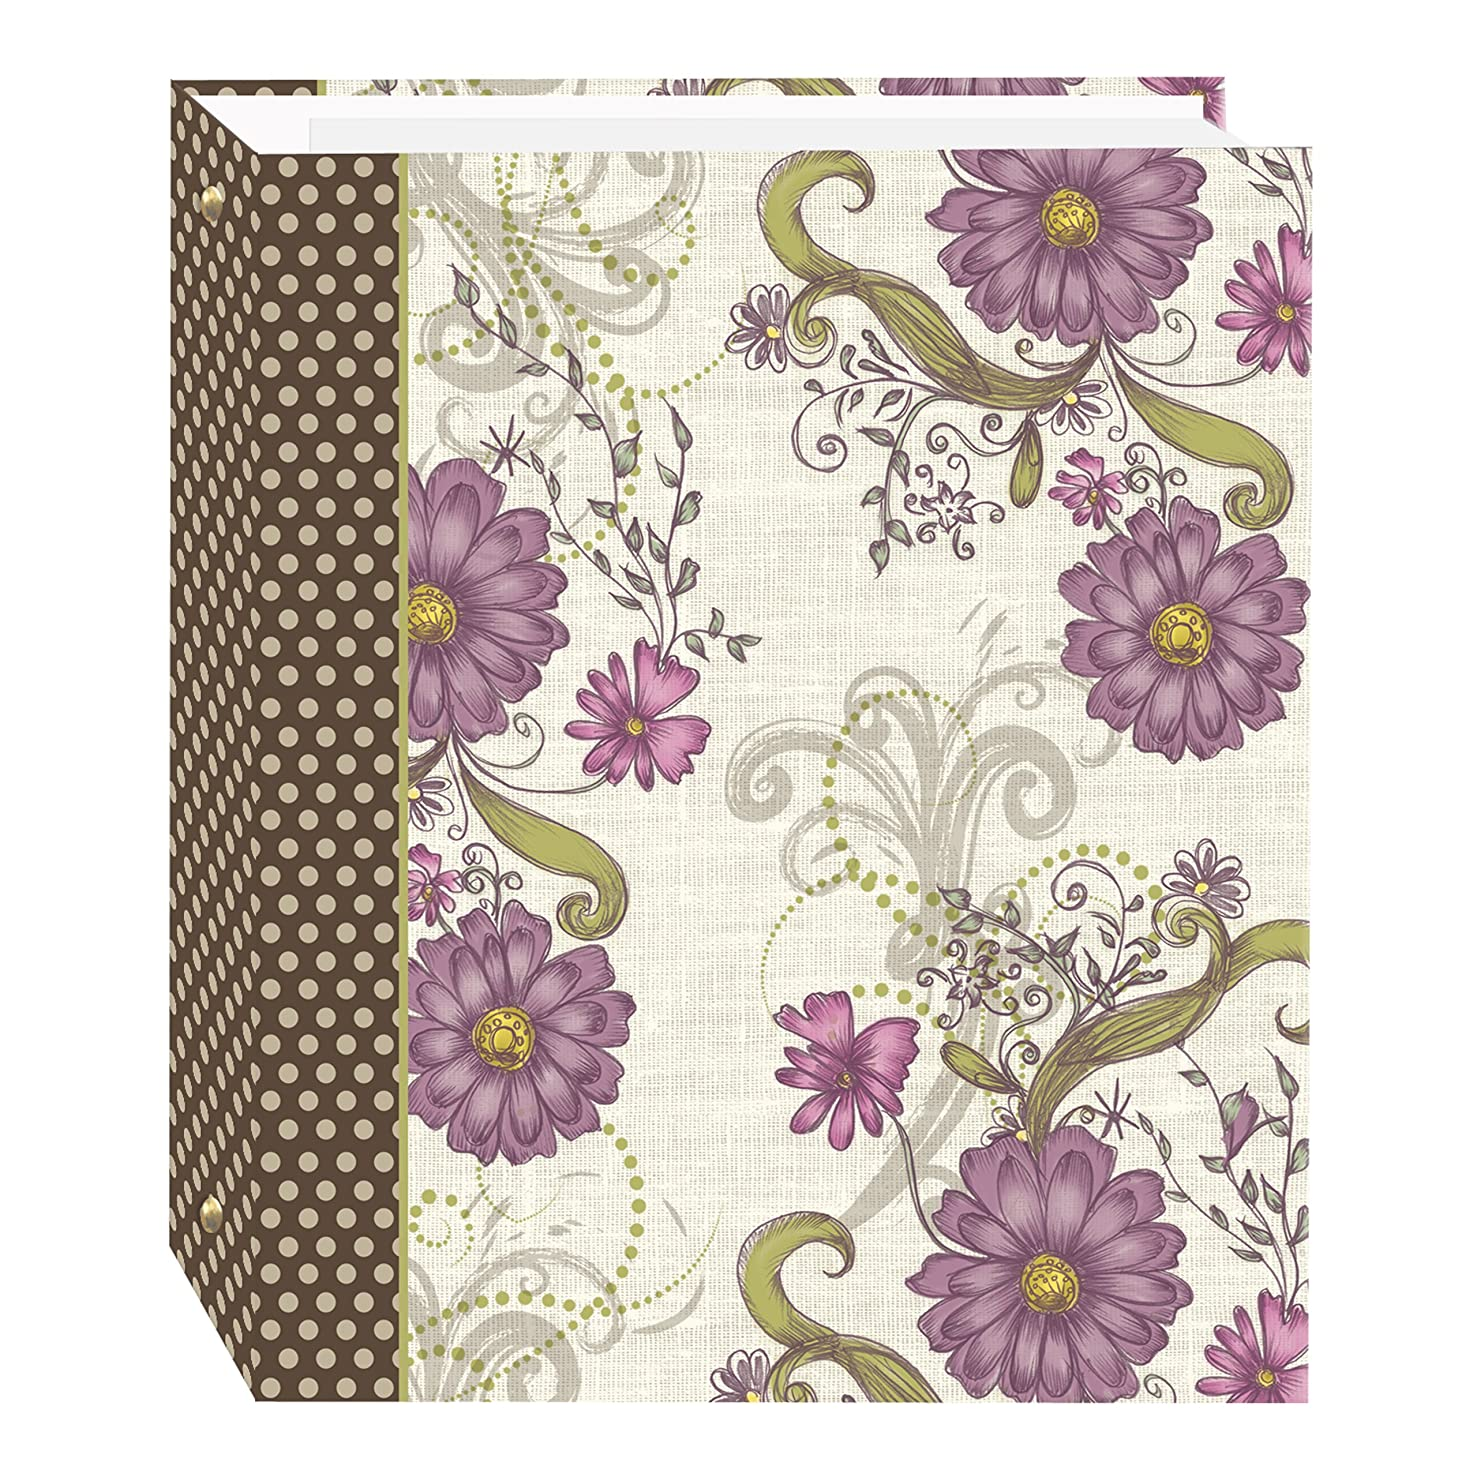 Magnetic Self-Stick 3-Ring Photo Album 100 Pages (50 Sheets), Berry Blossoms Design